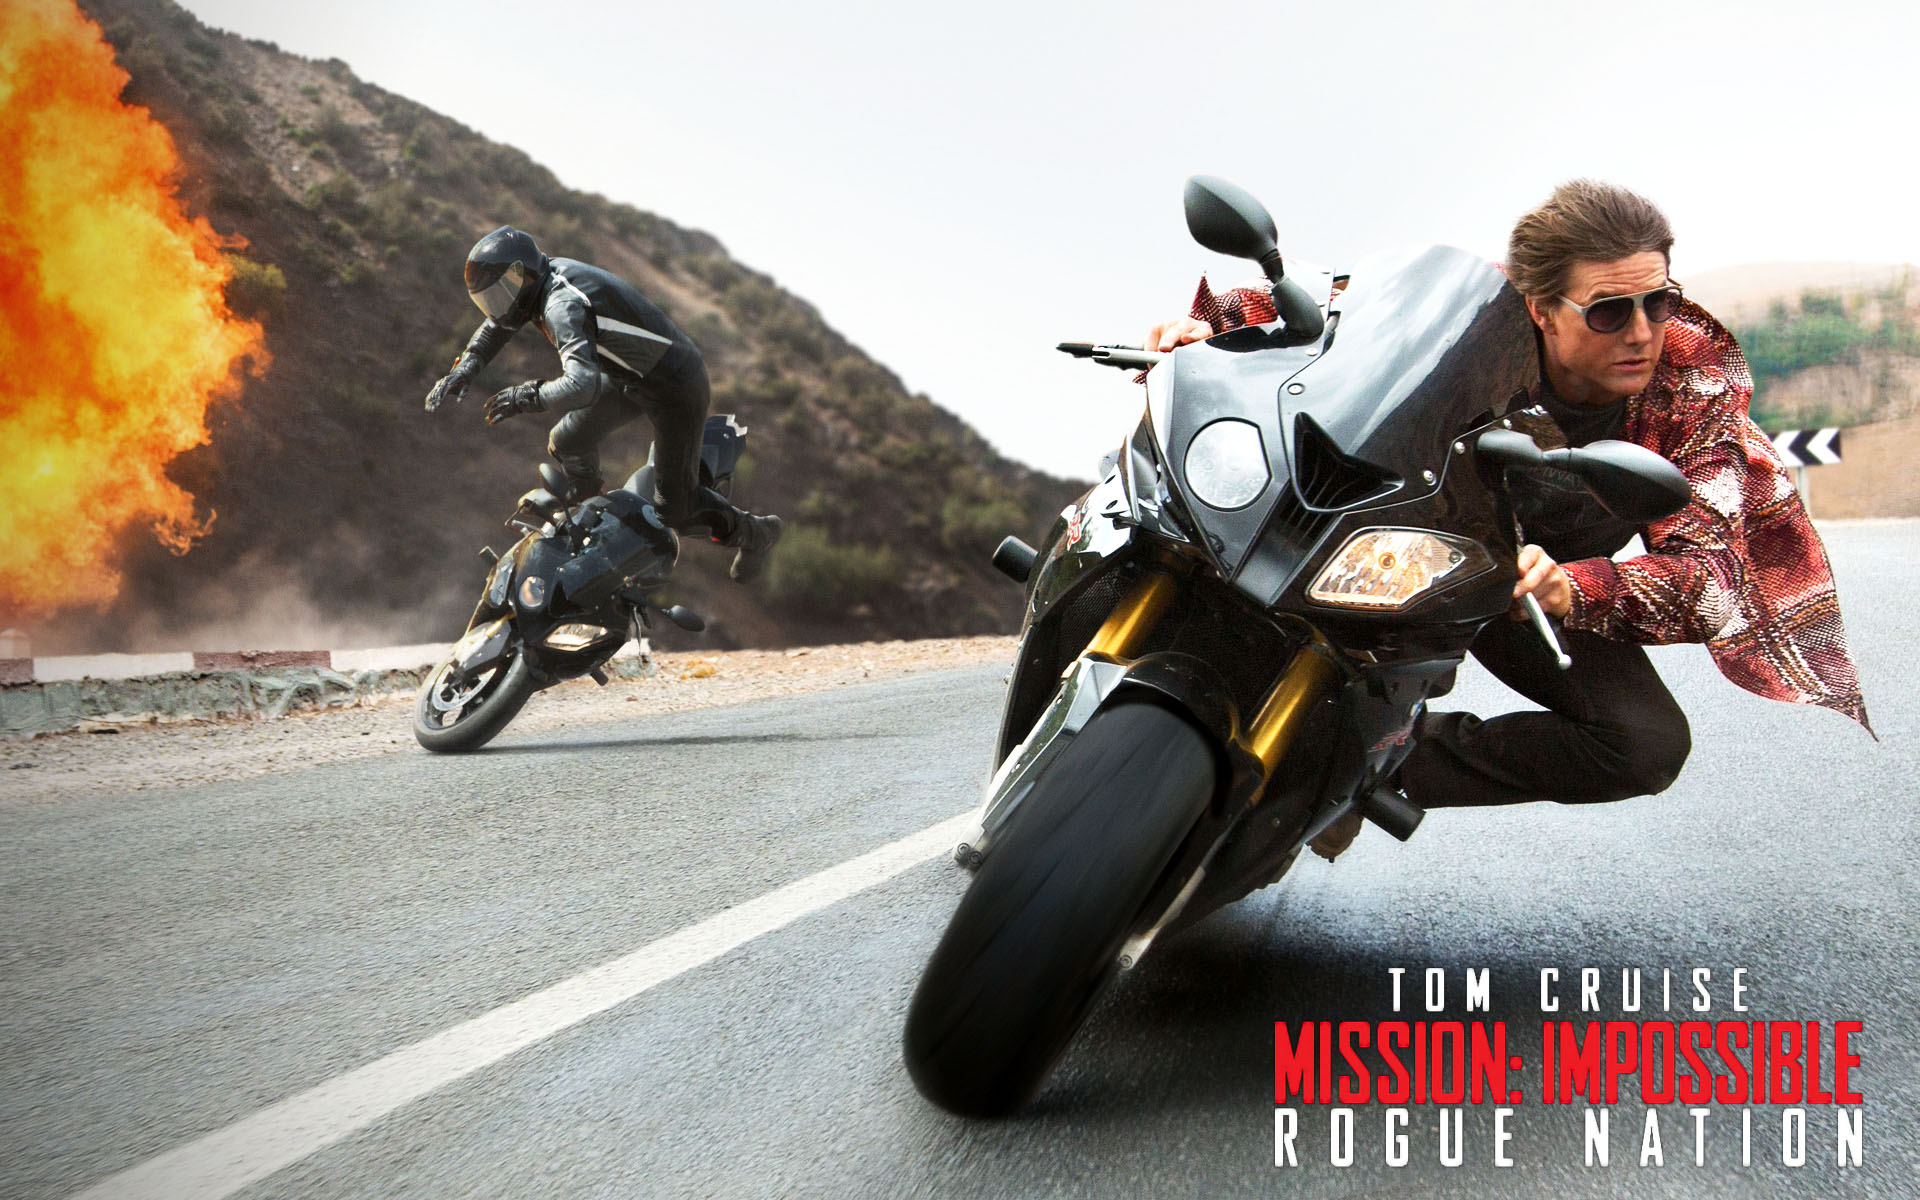 Mission_Impossible_5_1920x1200.jpg